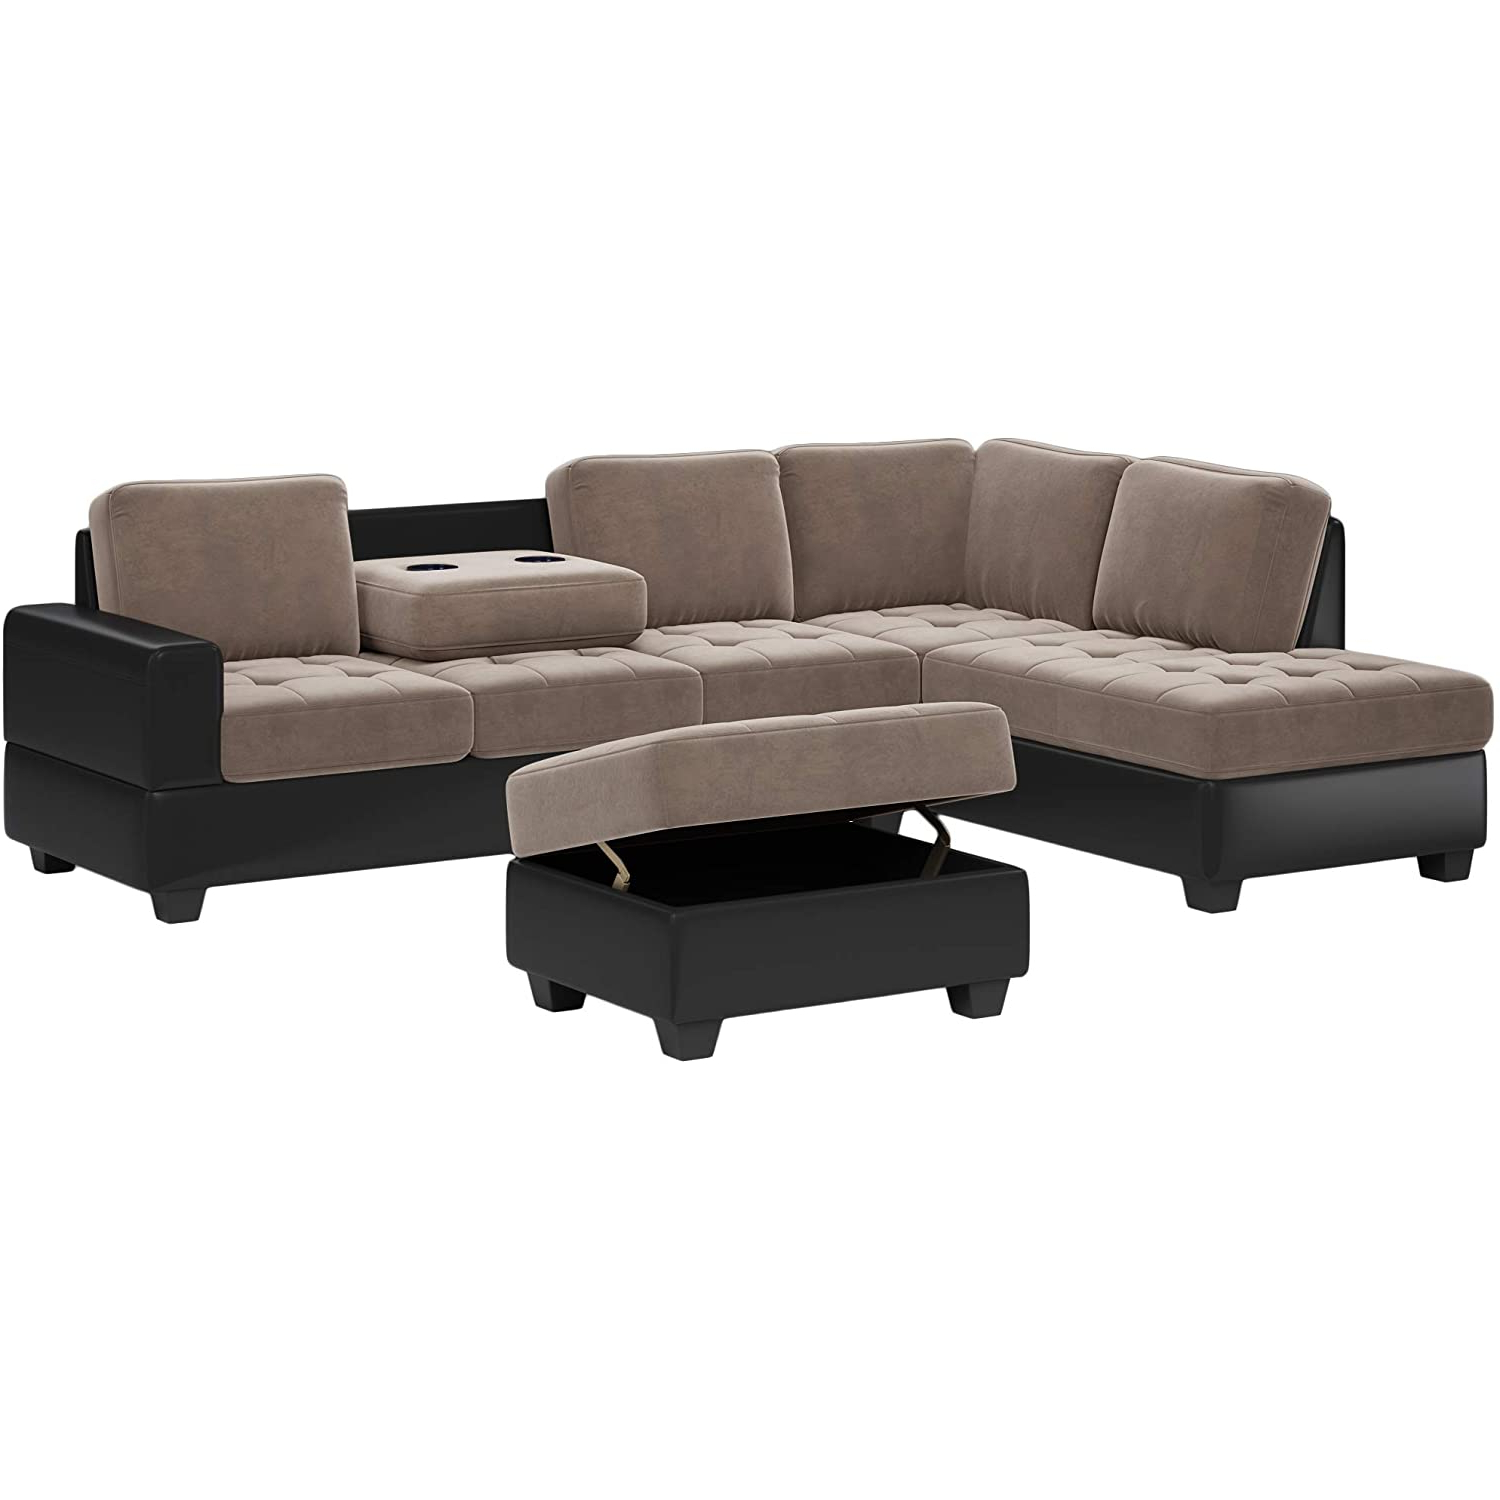 Amazon: Convertible Sectional Sofa, L Shape Couch With Throughout Recent Palisades Reversible Small Space Sectional Sofas With Storage (View 22 of 25)